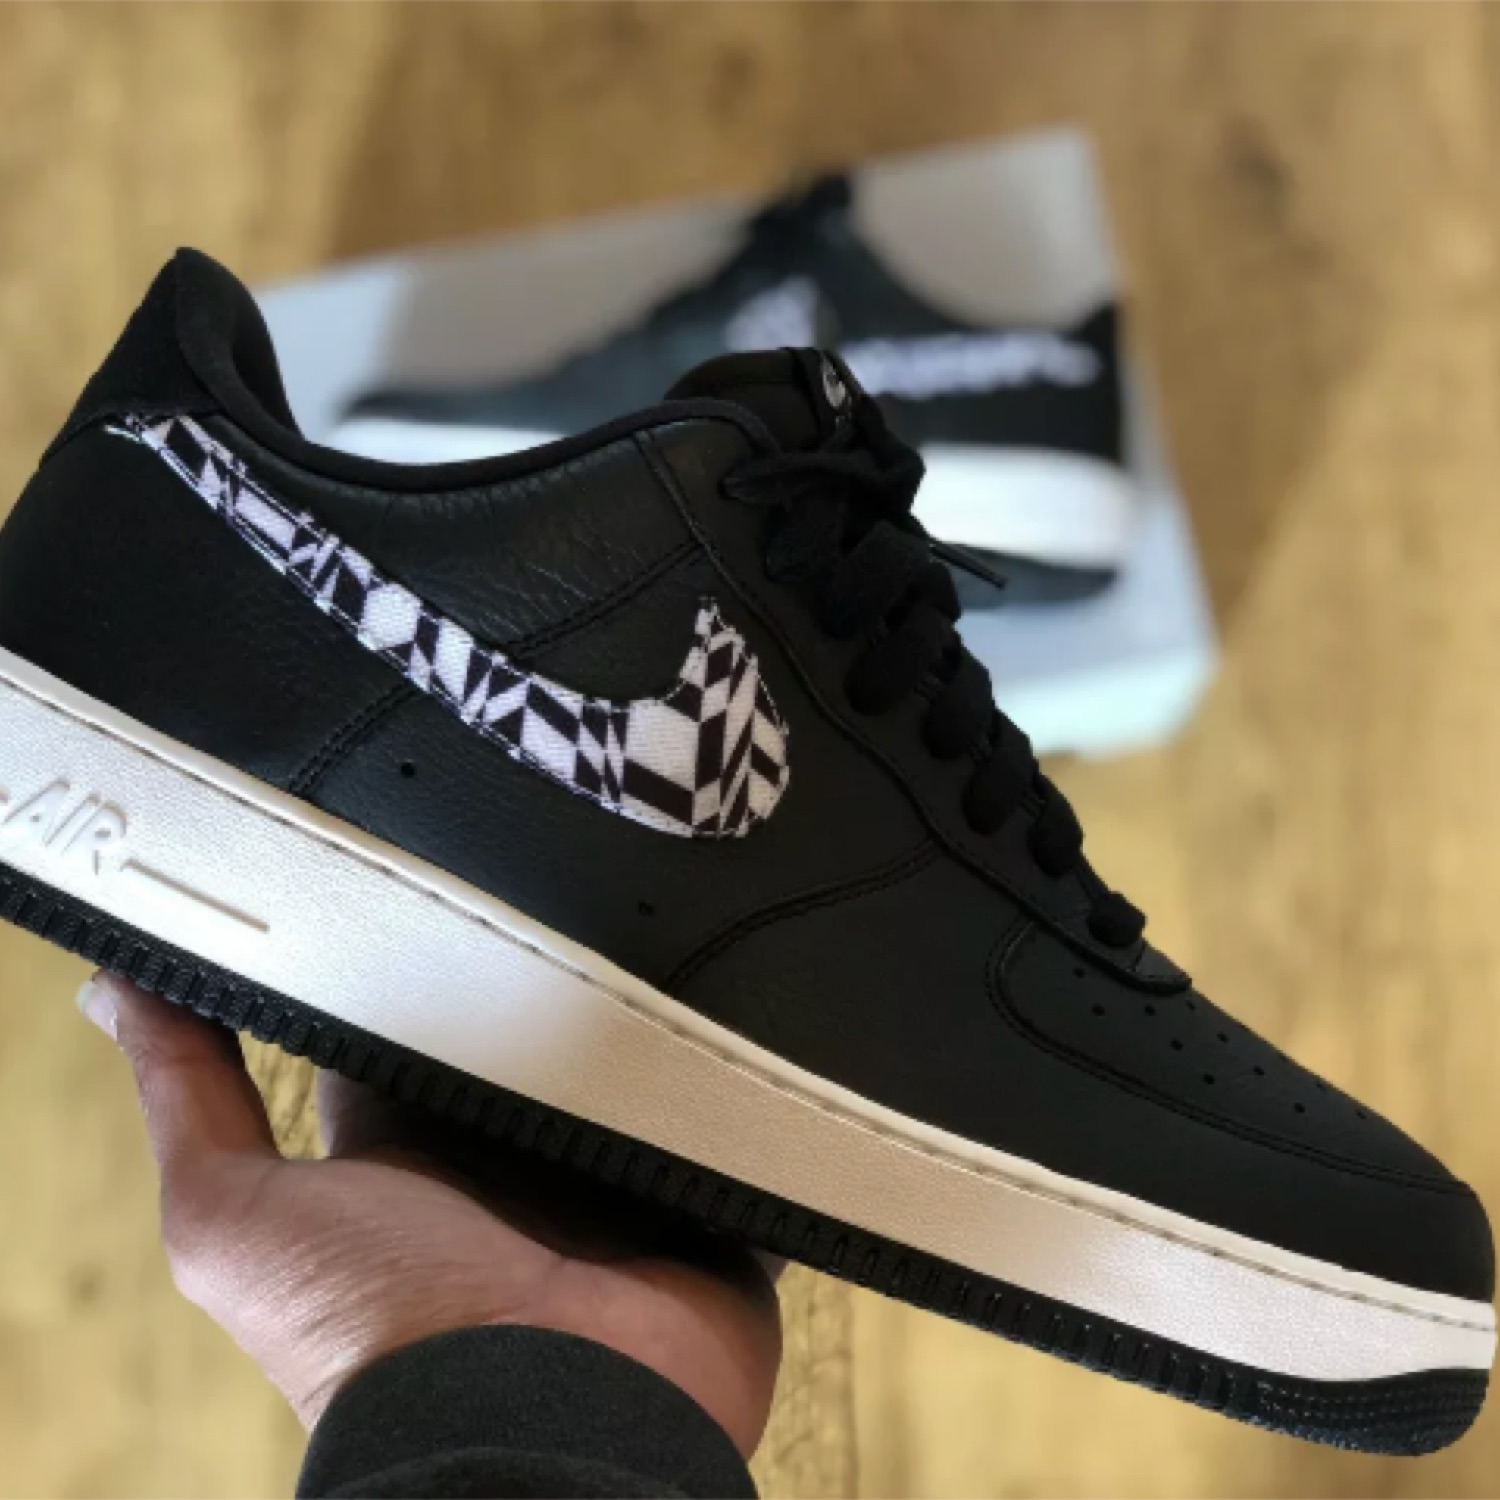 Nike Air Force 1 Aop Prm Black White